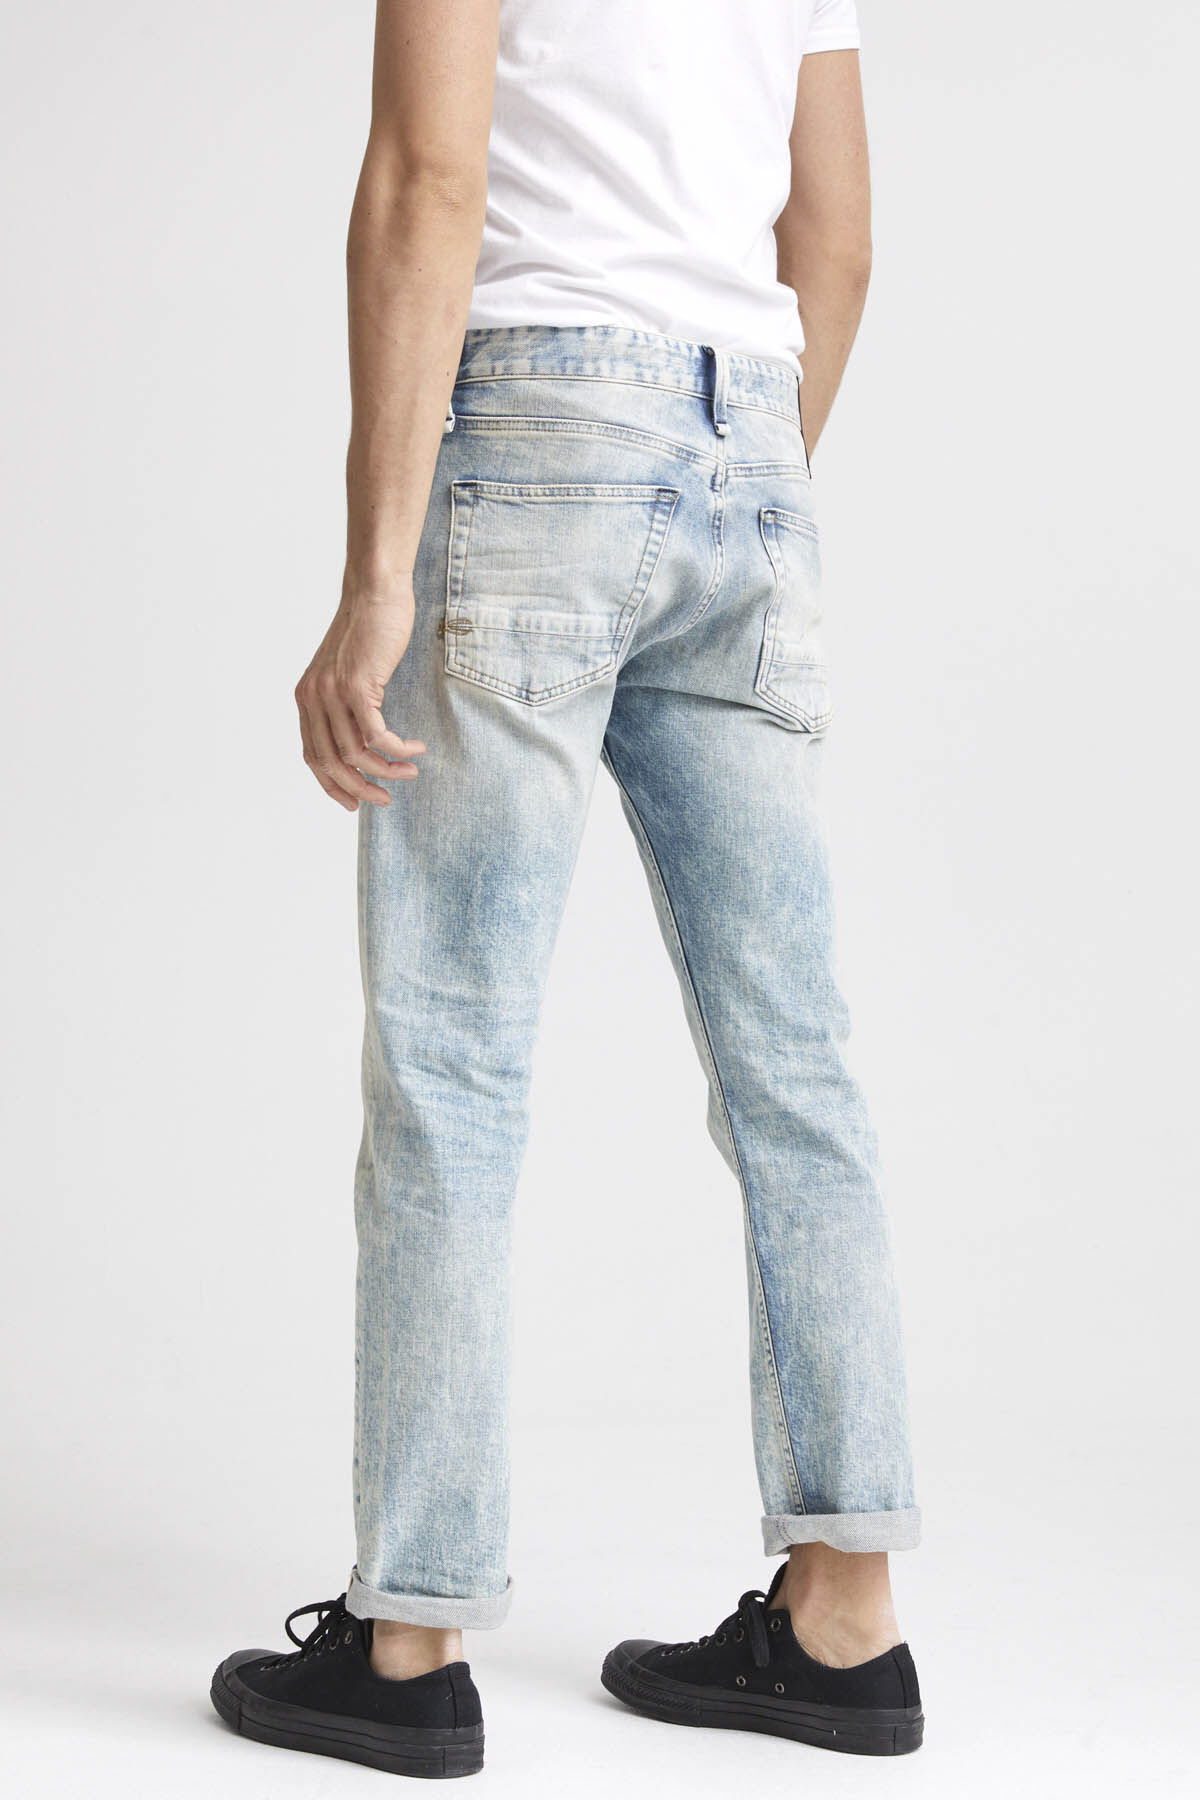 RAZOR Faded Signature Selvedge Denim - Slim Fit